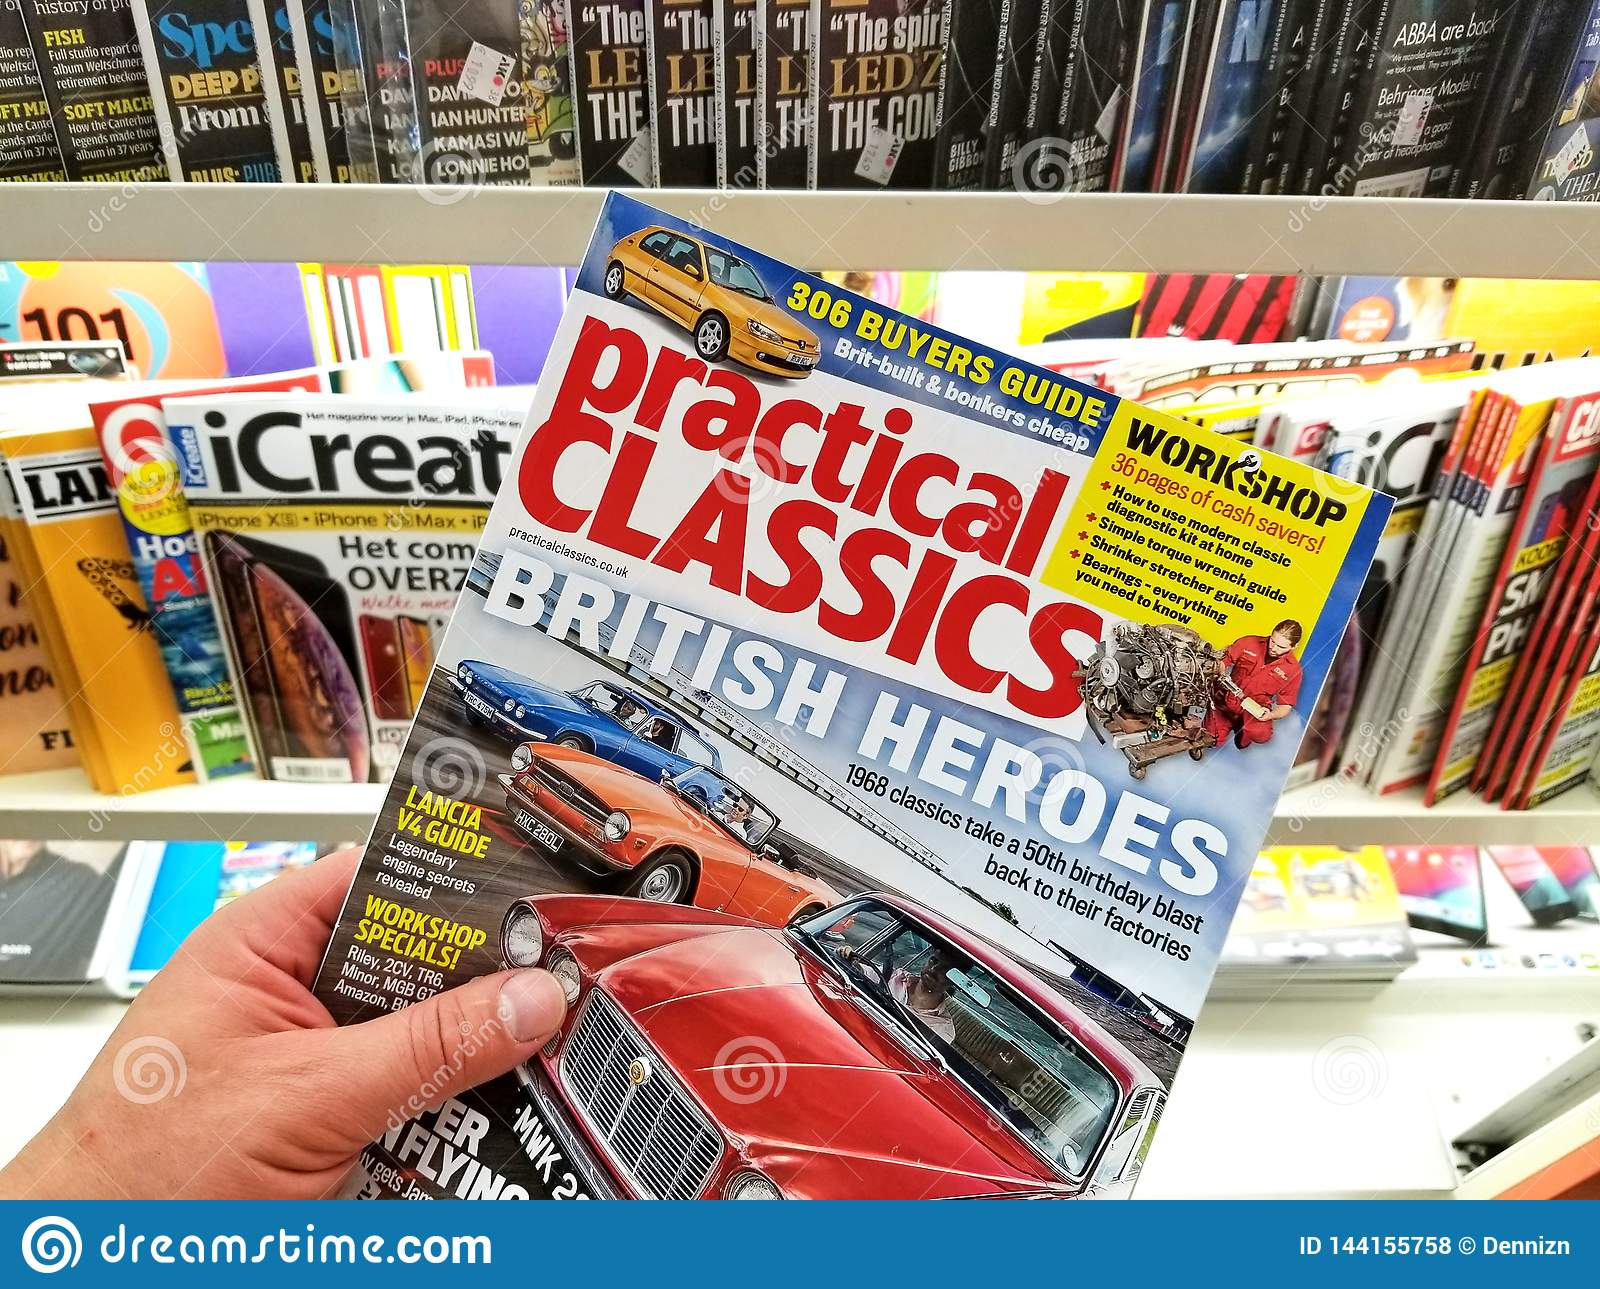 Practical Classics magazine in a hand